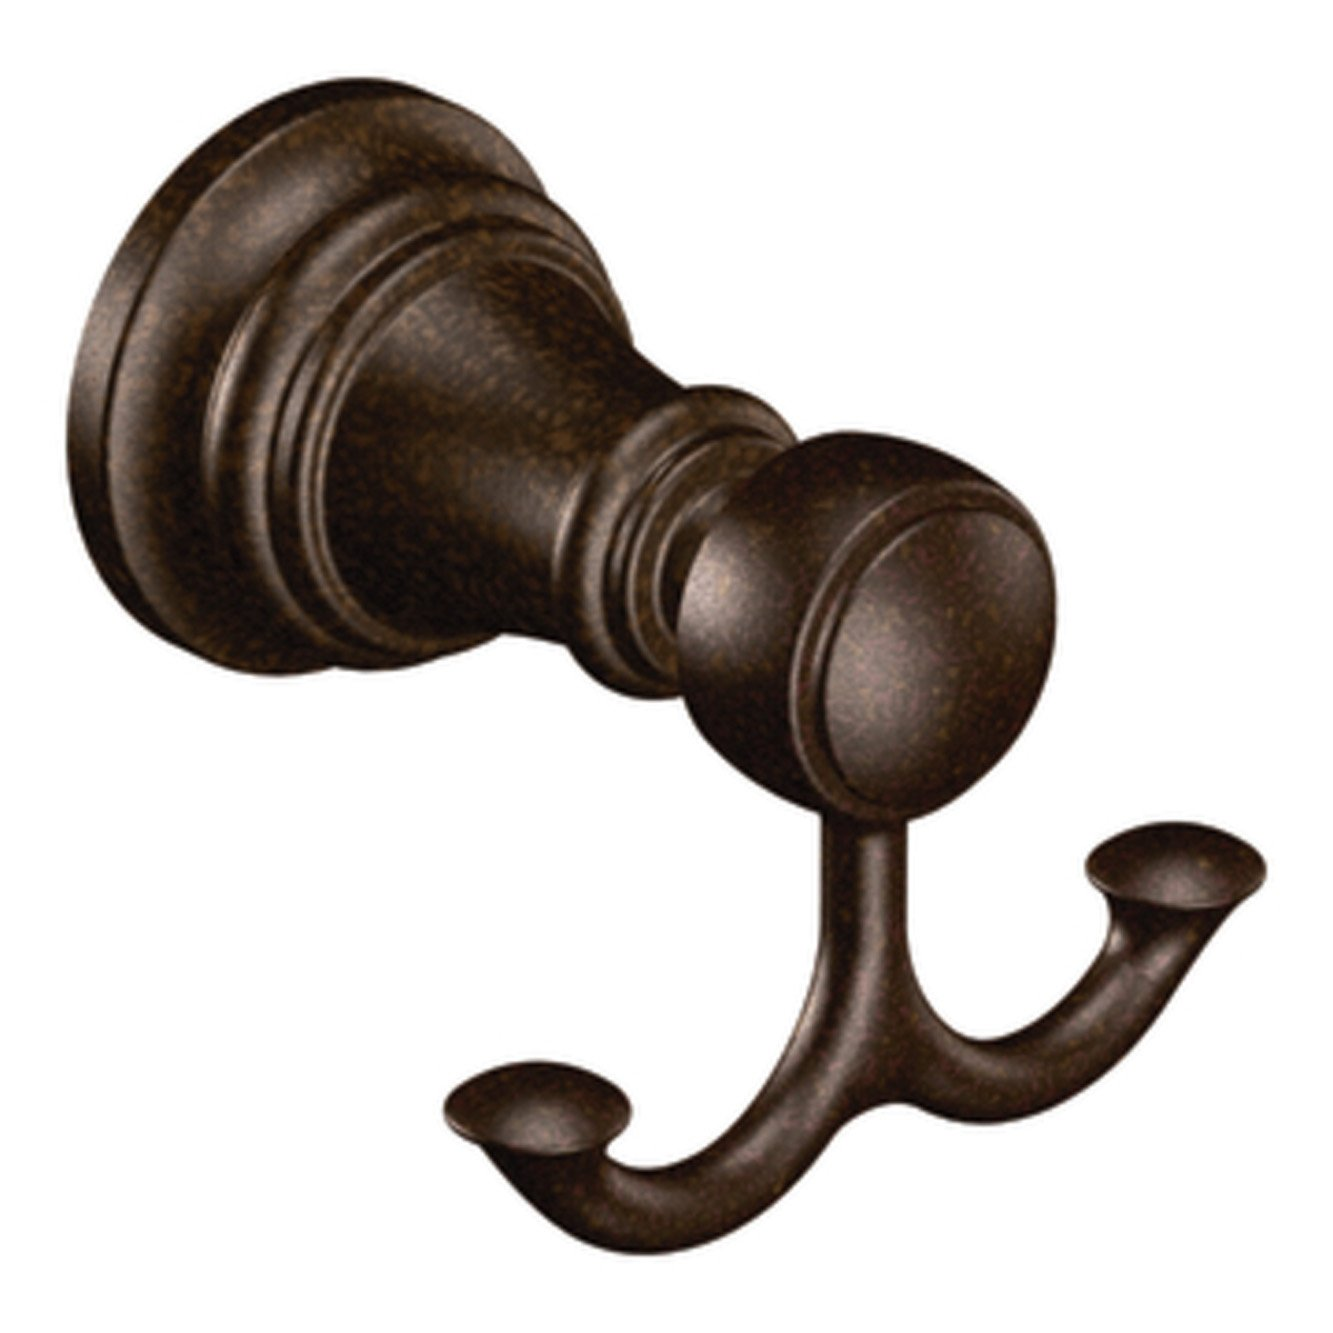 Moen YB8403ORB Weymouth Robe Hook, Oil Rubbed Bronze by Moen